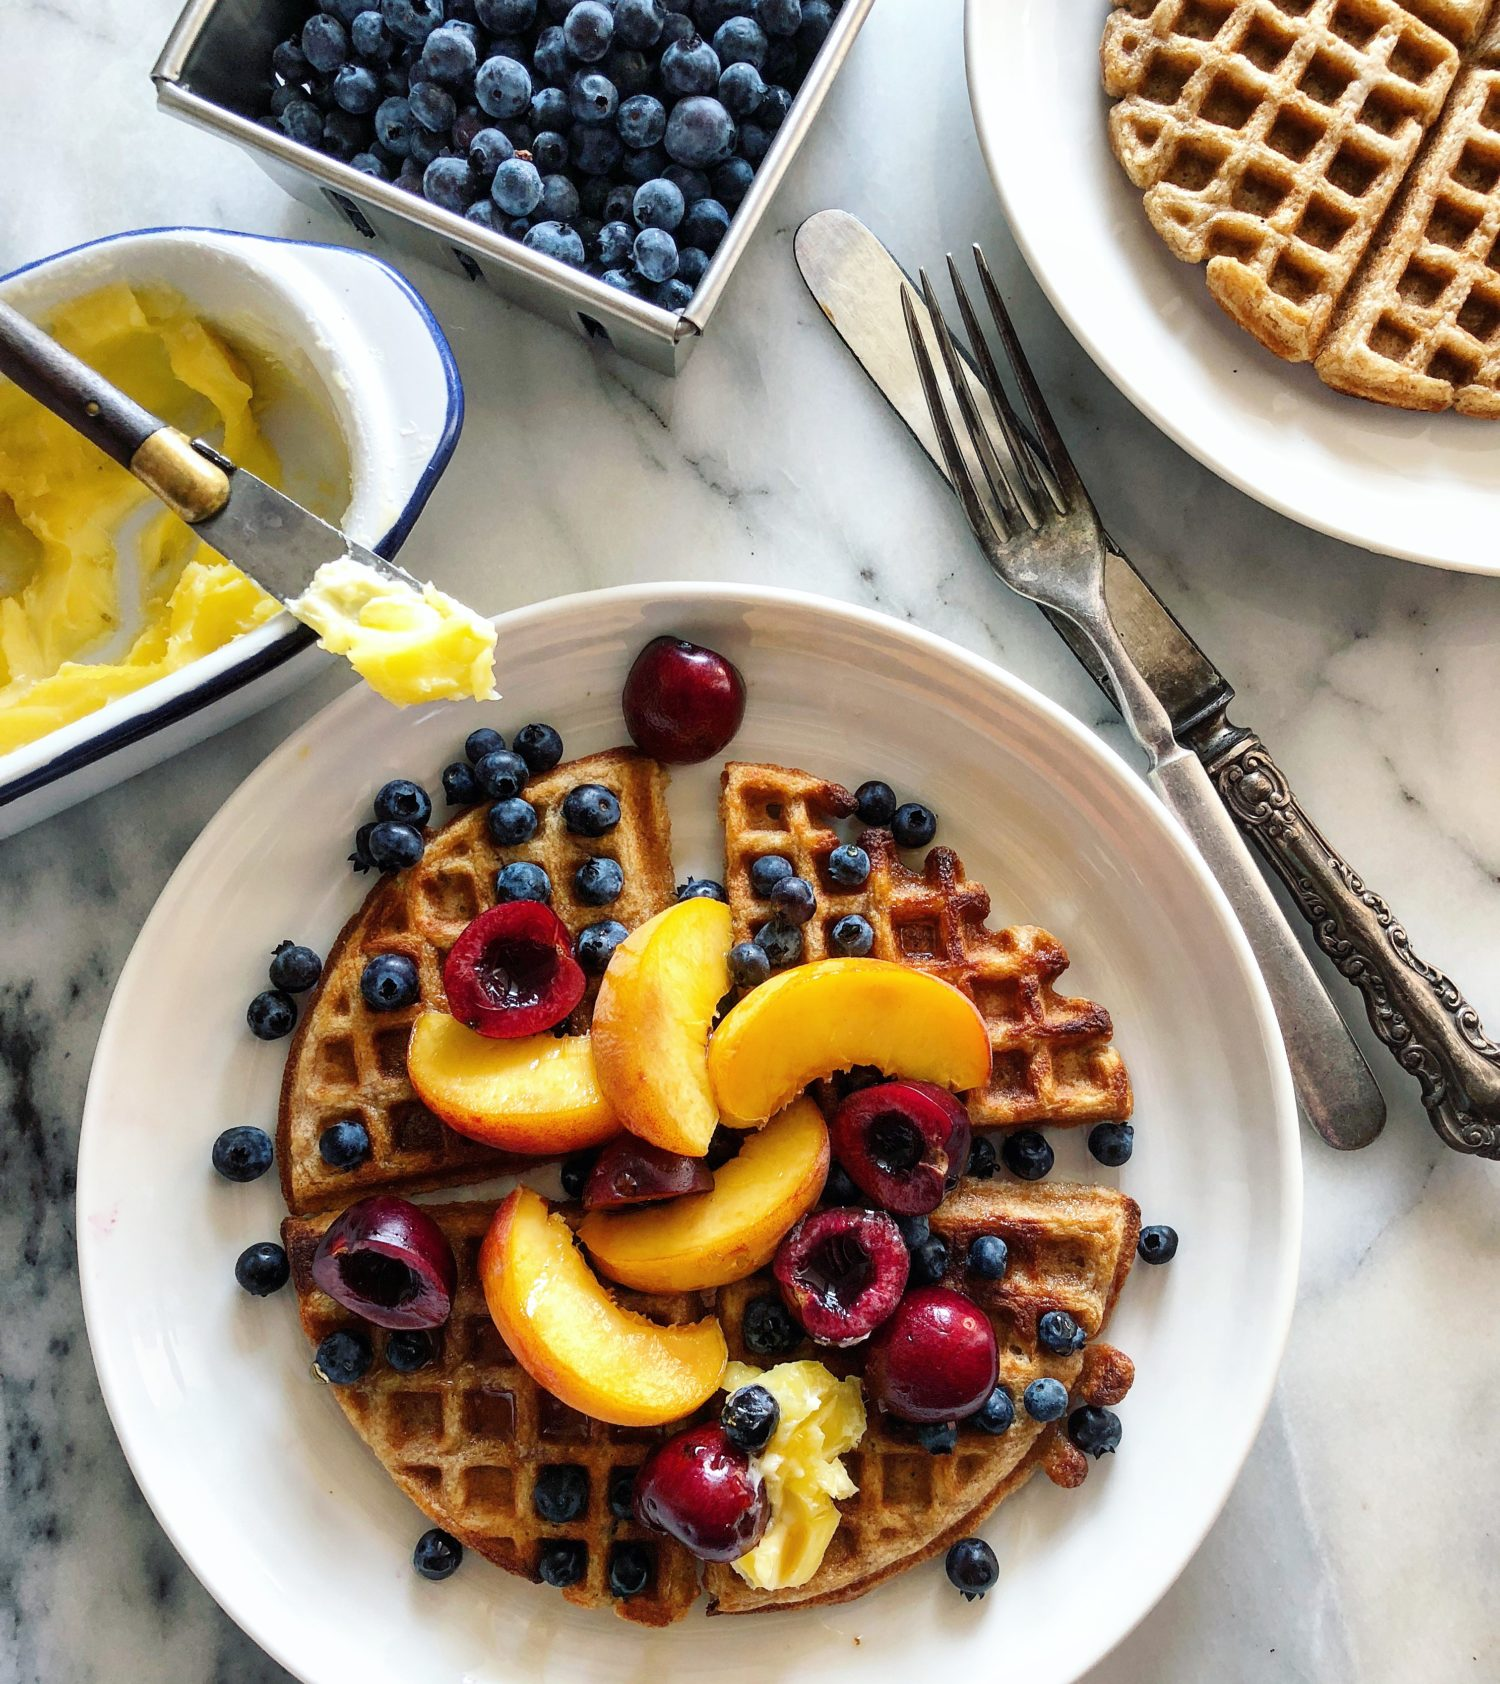 Peaches and wild berries on Earl Grey Waffles